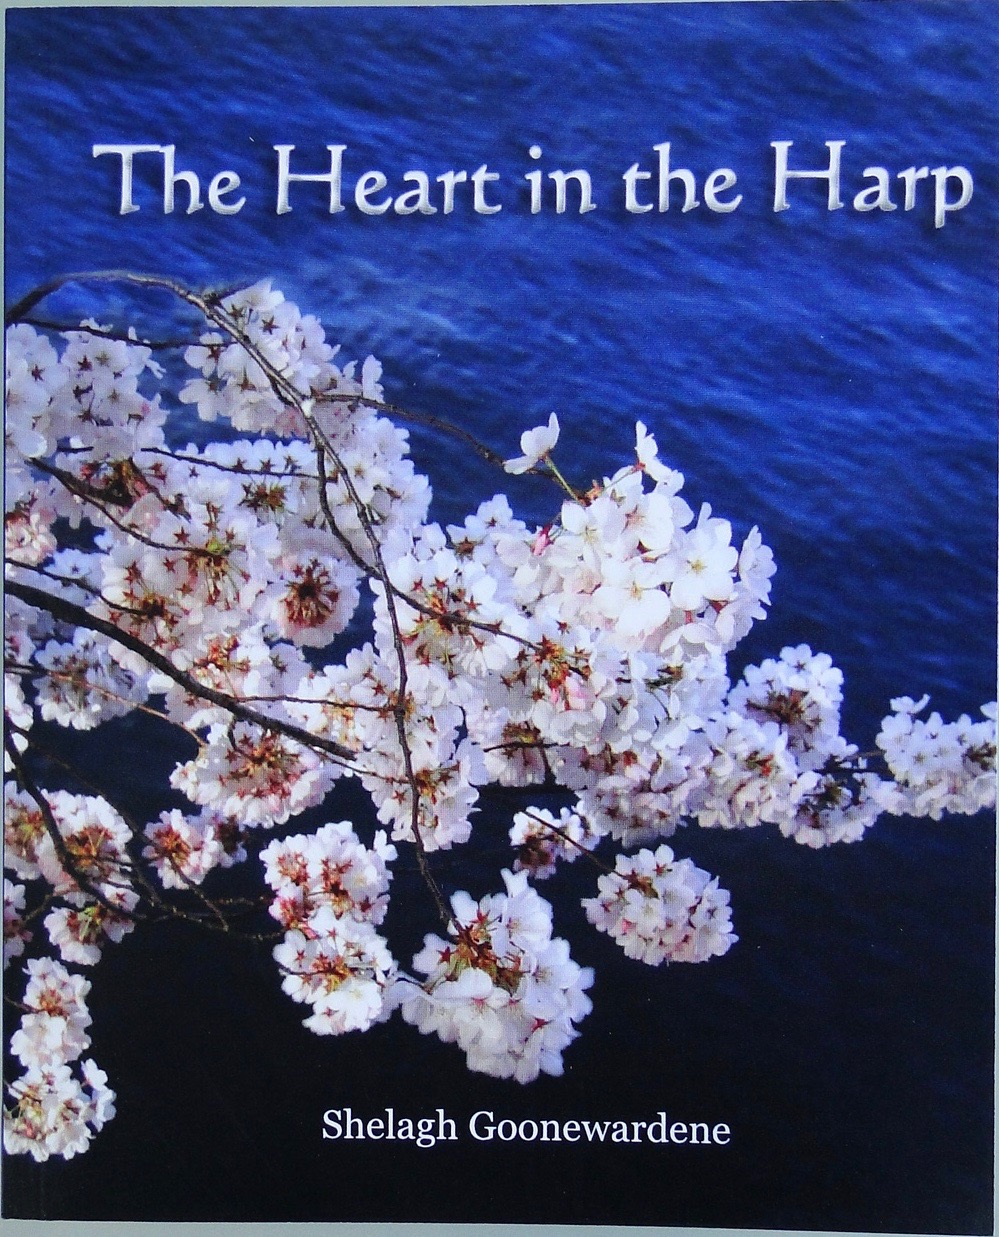 The Heart in the Harp / Shelagh Goonewardene